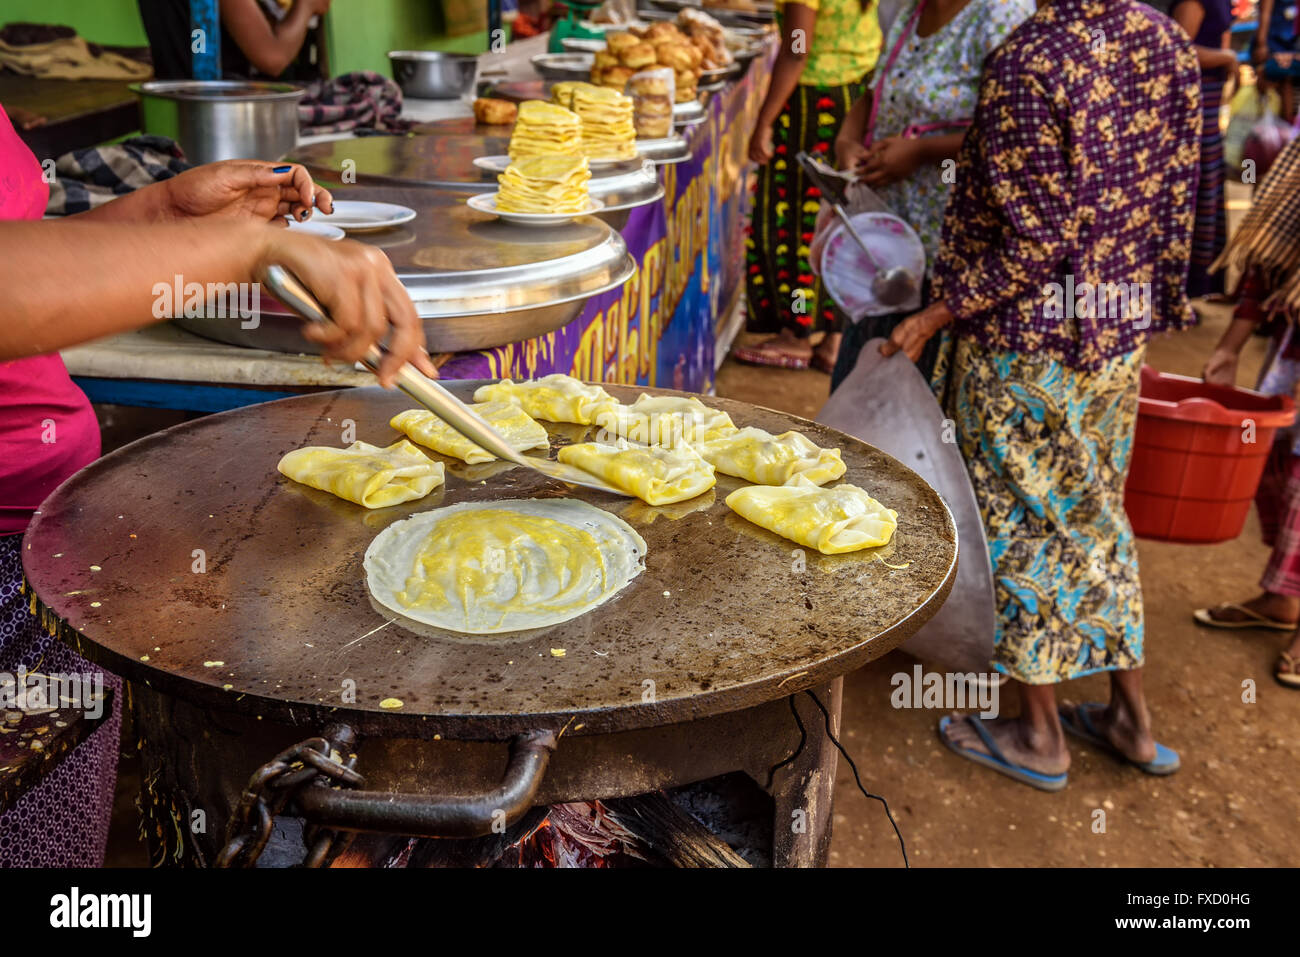 Asian cook prepares traditional Burmese street food in Myanmar - Stock Image